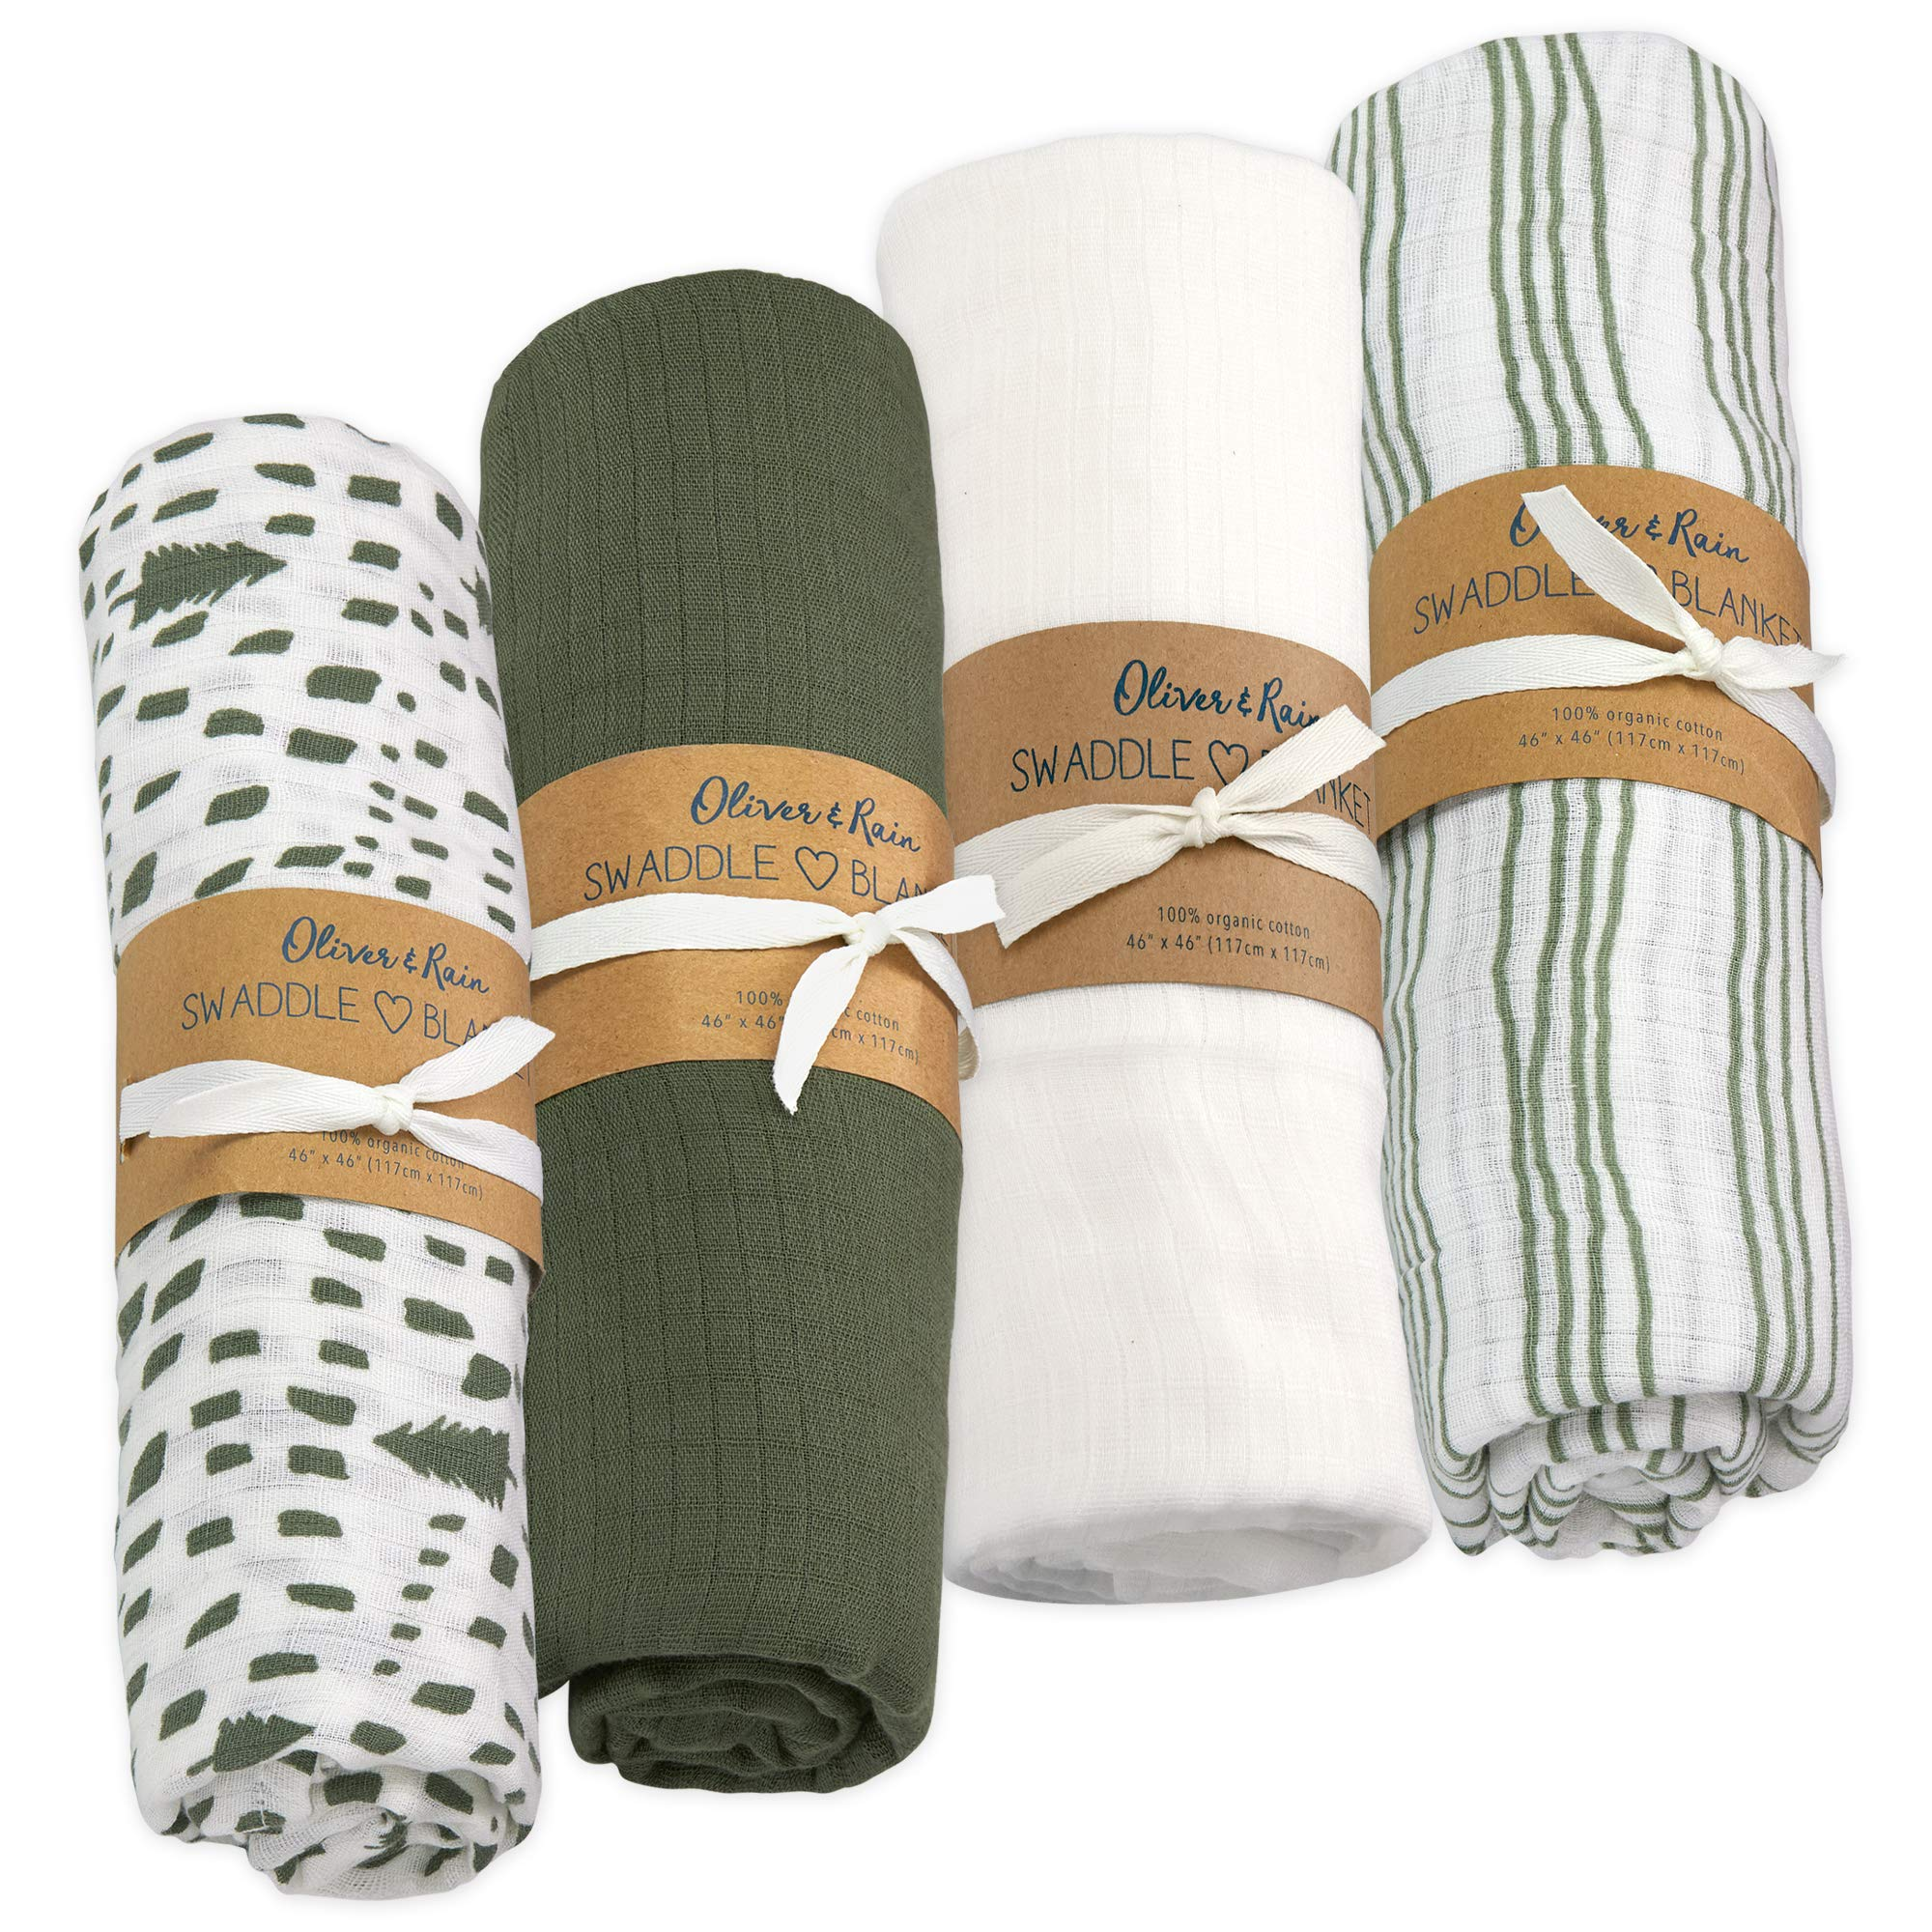 Oliver & Rain Baby Swaddle Sampler - 4-Pack Newborn 100% Organic Cotton Muslin Swaddle Blankets (Green Tree & Stripe)